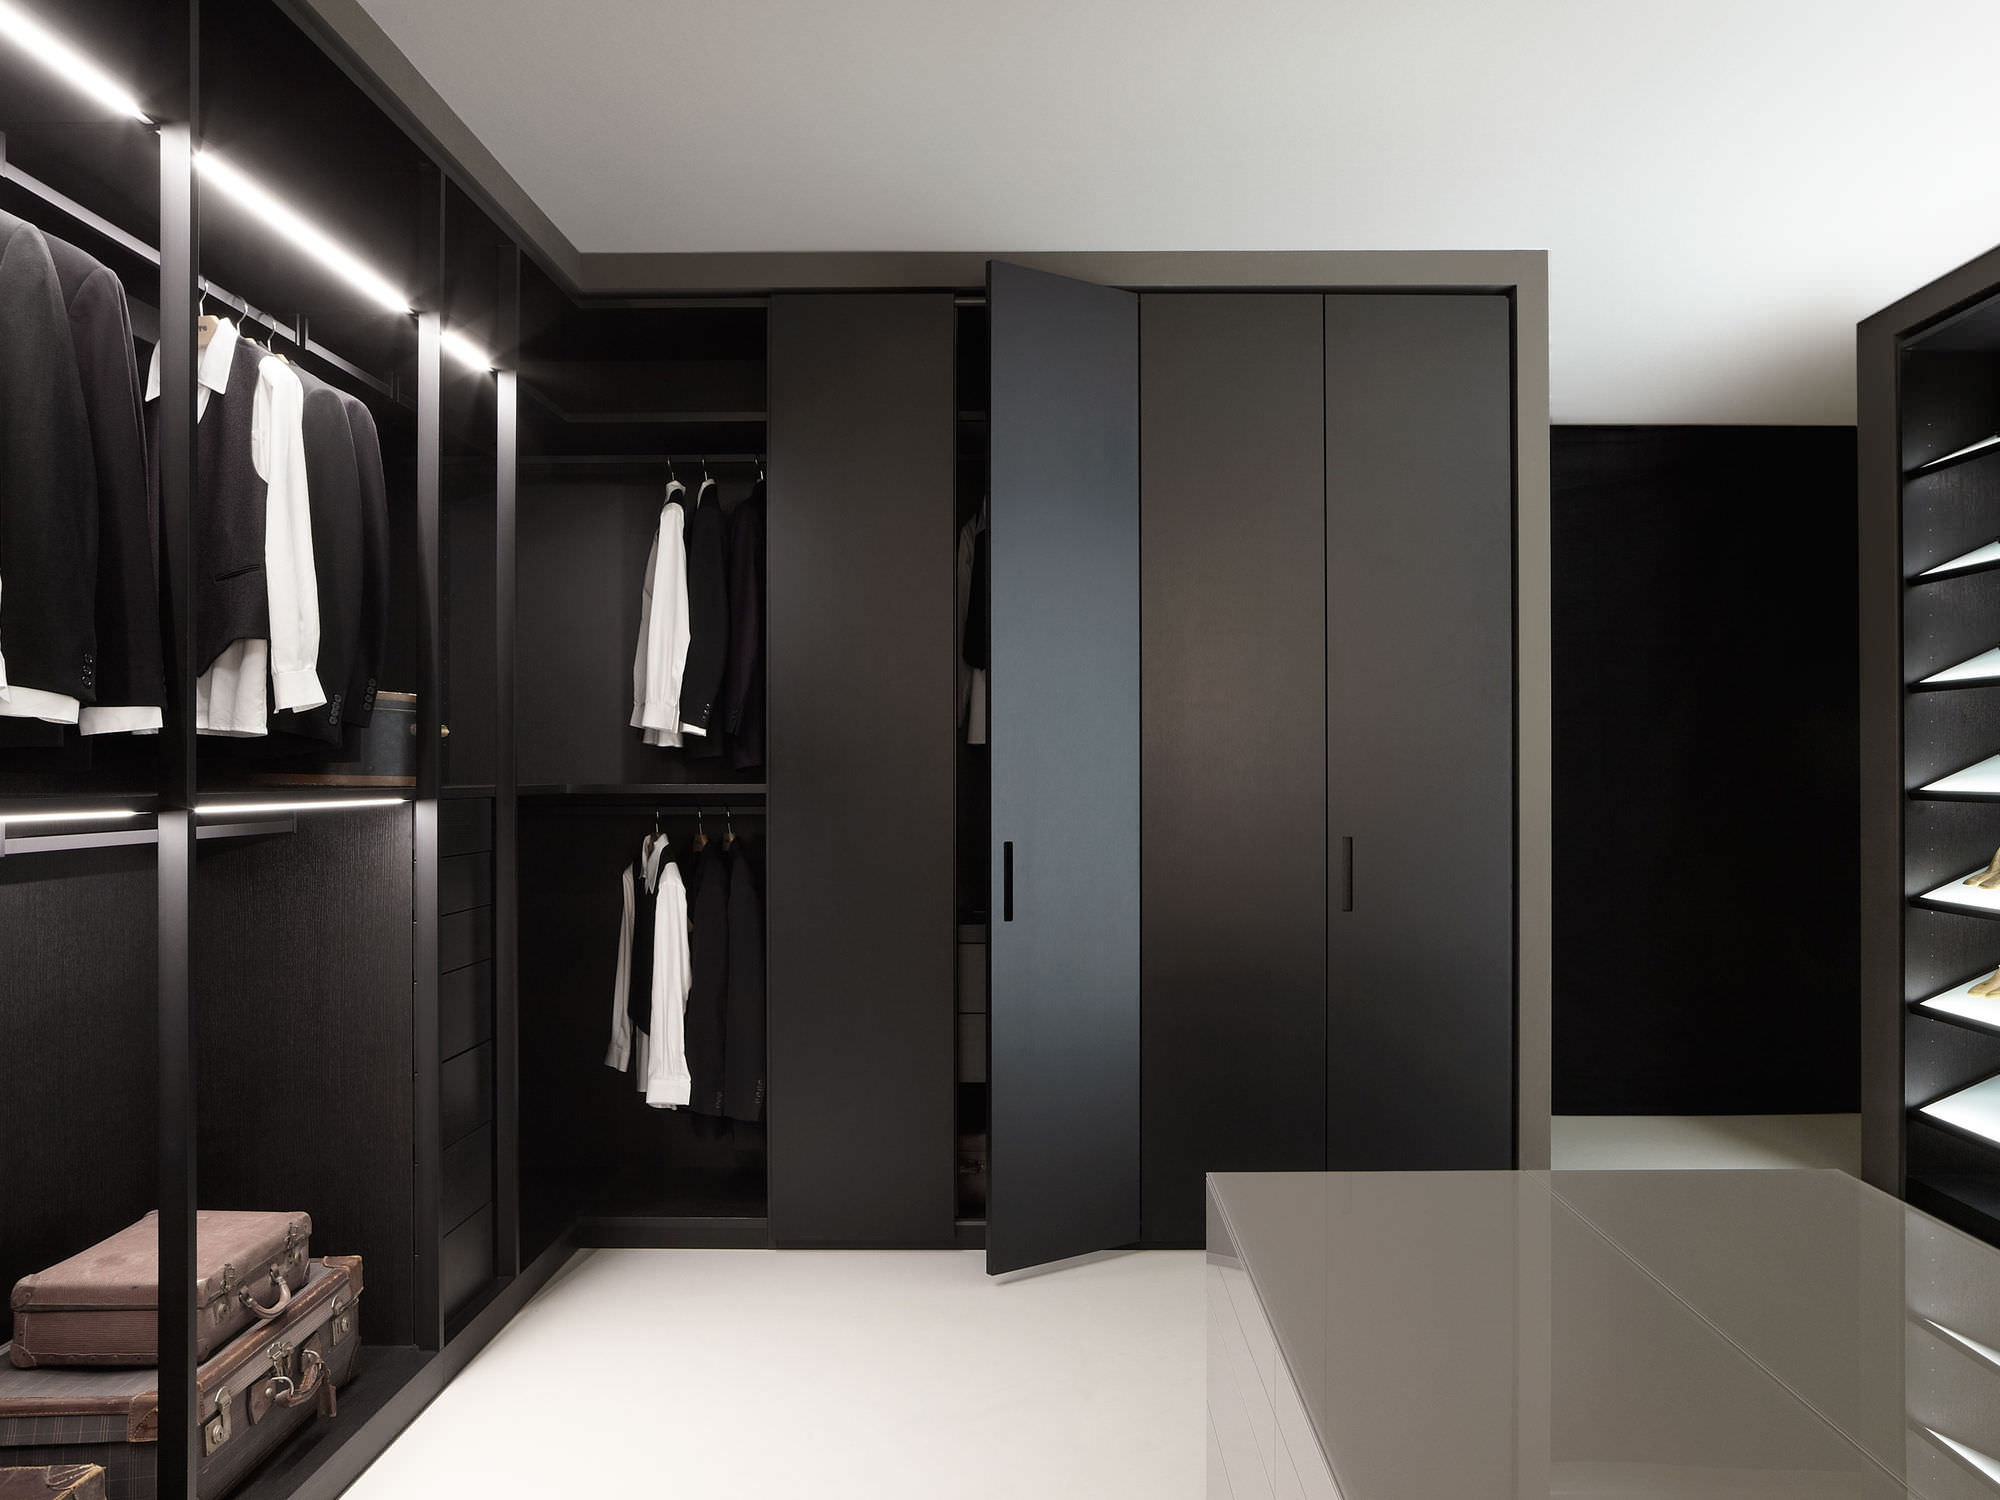 25 Best Modern Storage Closets Designs Closet Designs Modern Throughout Bedroom Wardrobe Storages (View 13 of 25)